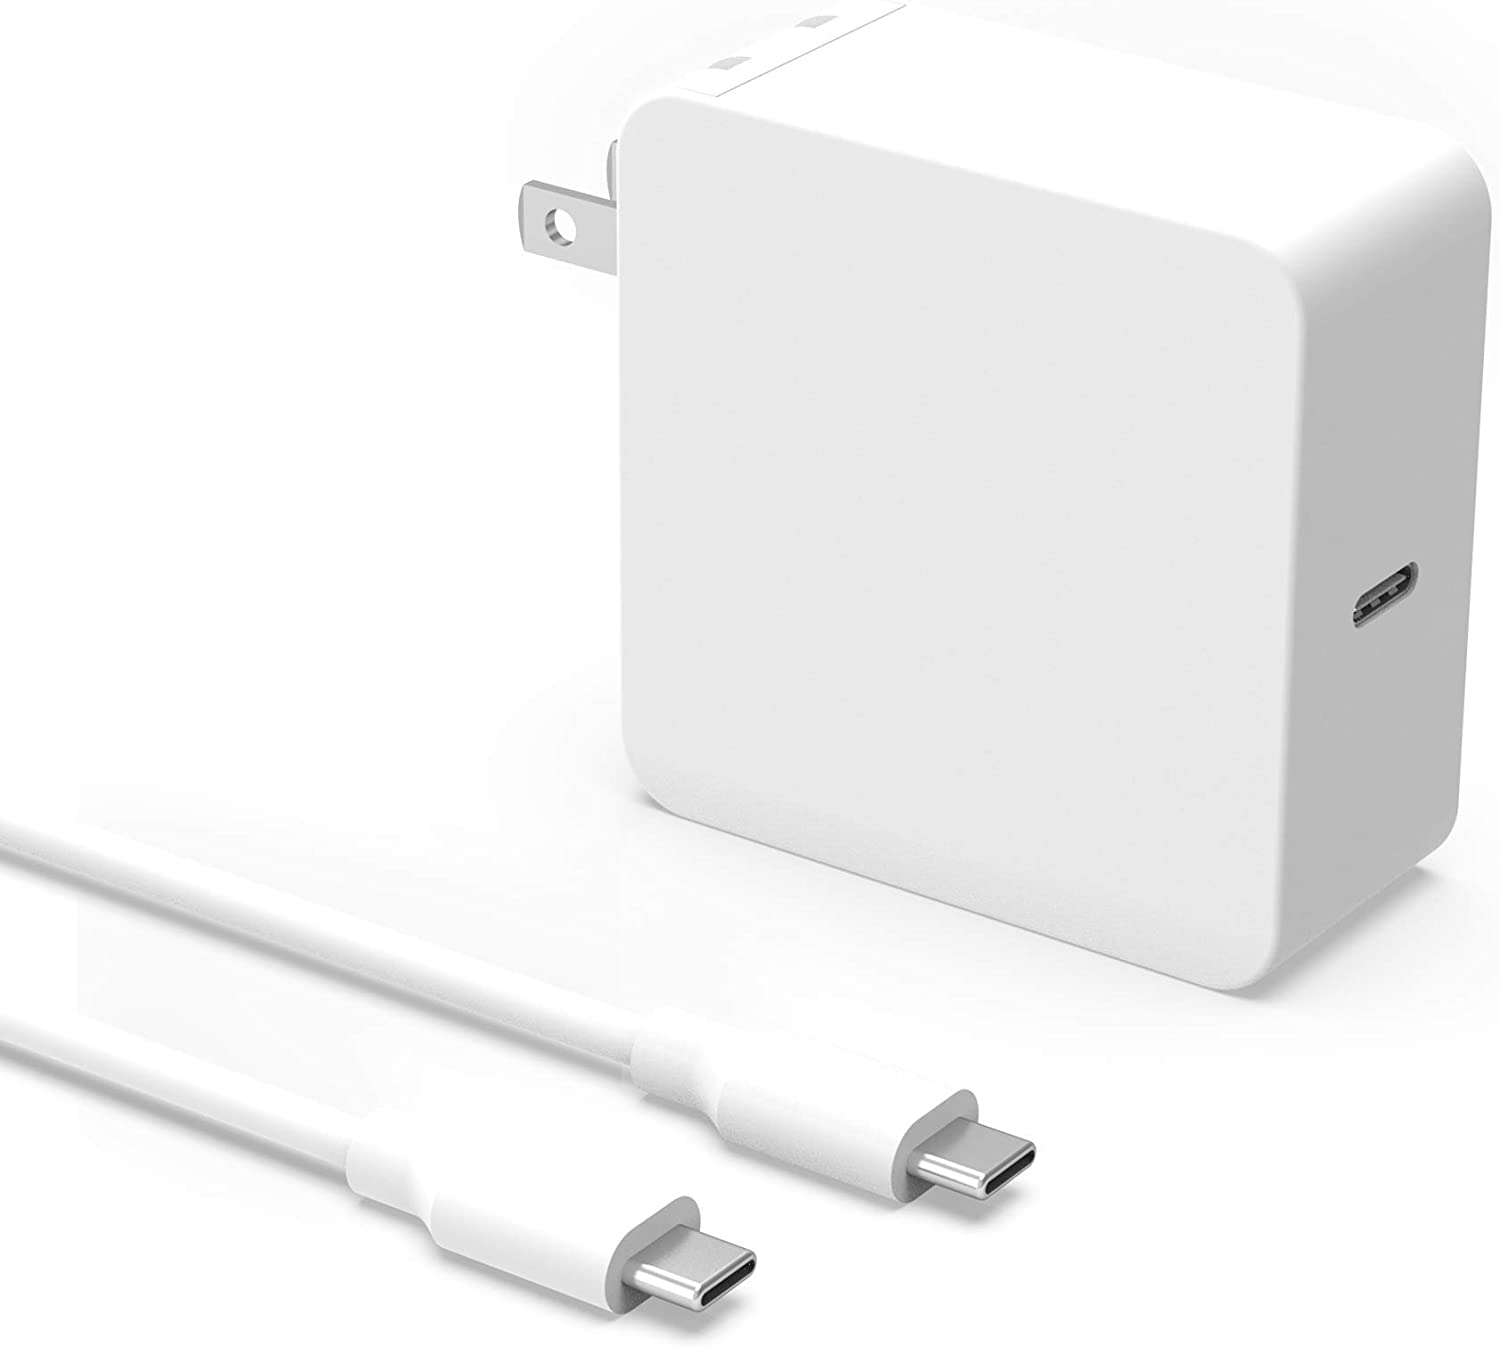 [UL Listed] USB C AC Adapter Charger for Huawei Matebook X Pro Laptop with 7.5Ft Type C Power Supply Cord